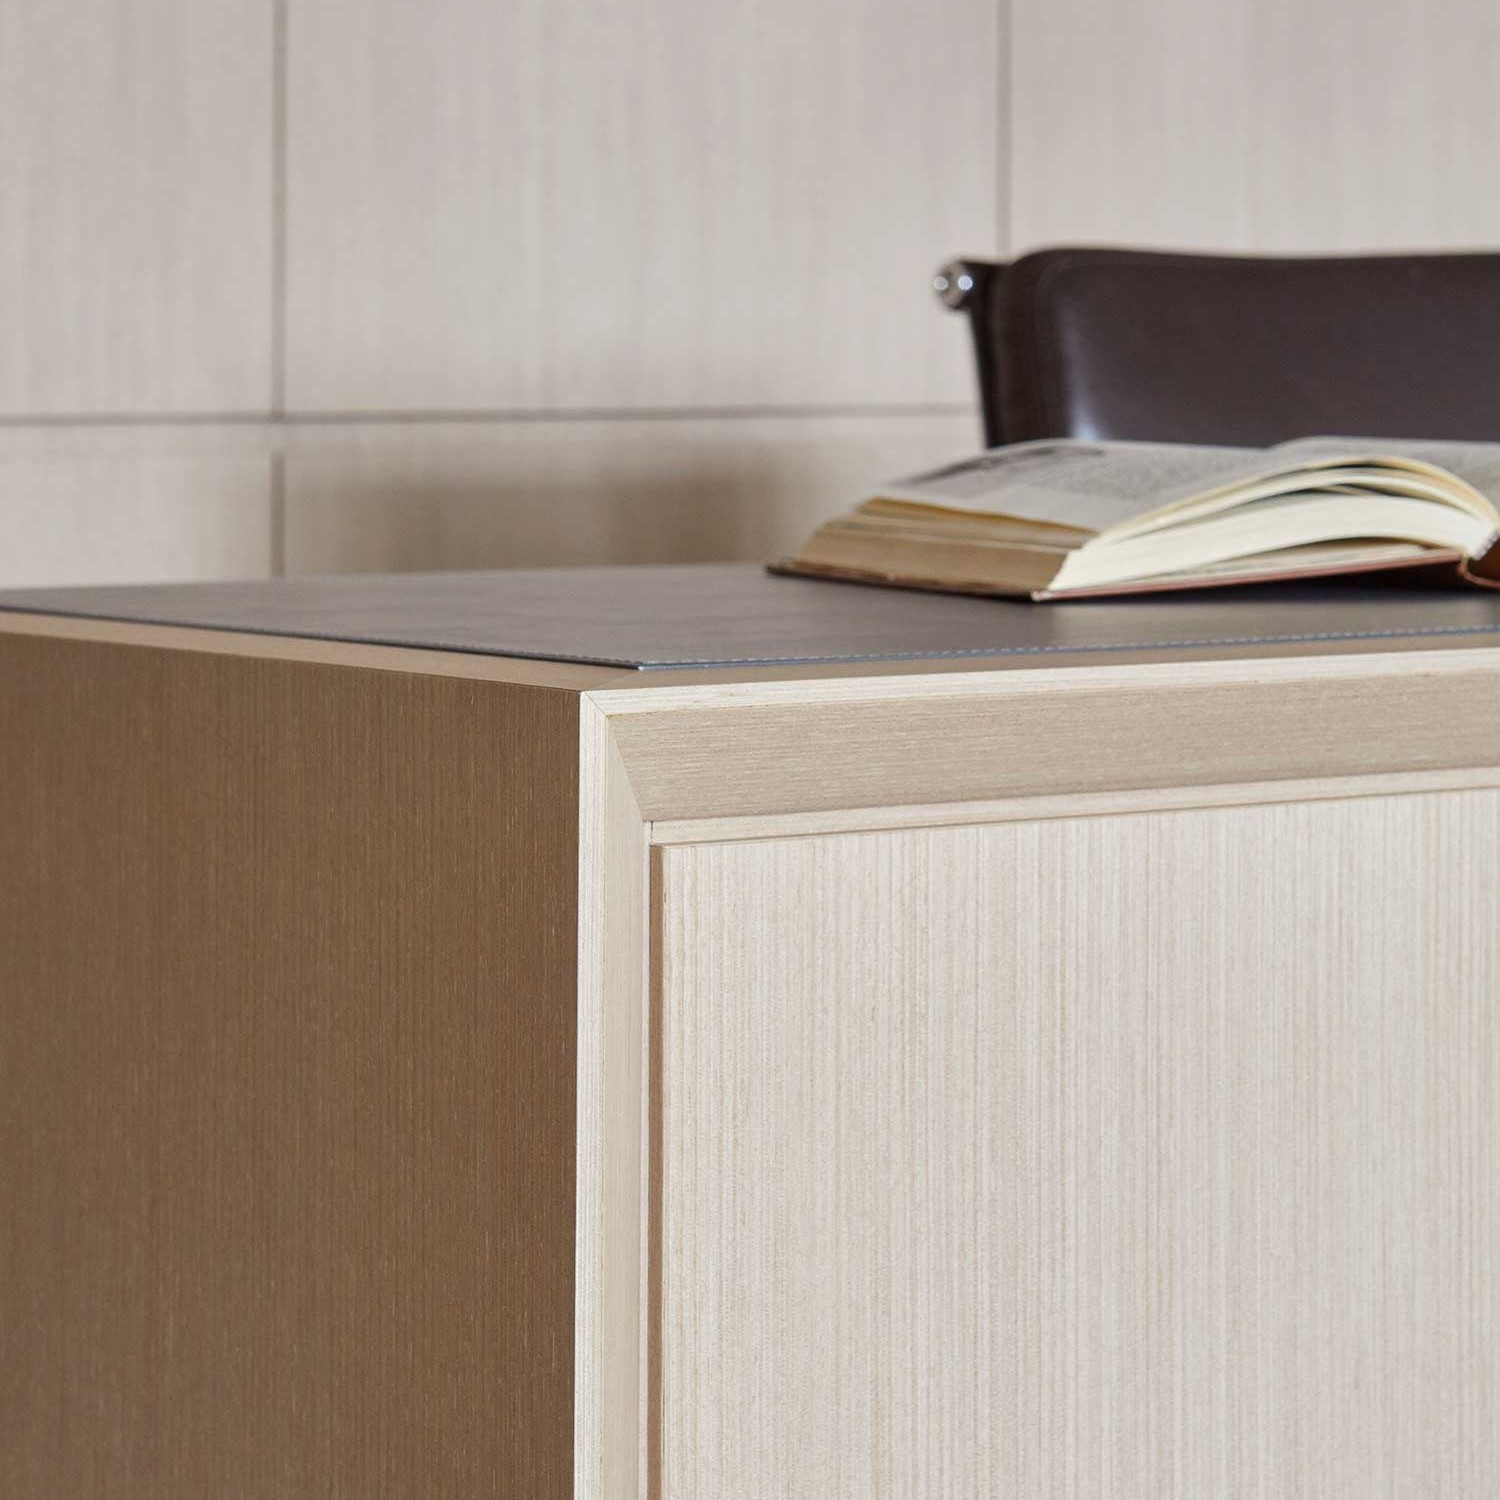 detail of edged design of custom built-in desk